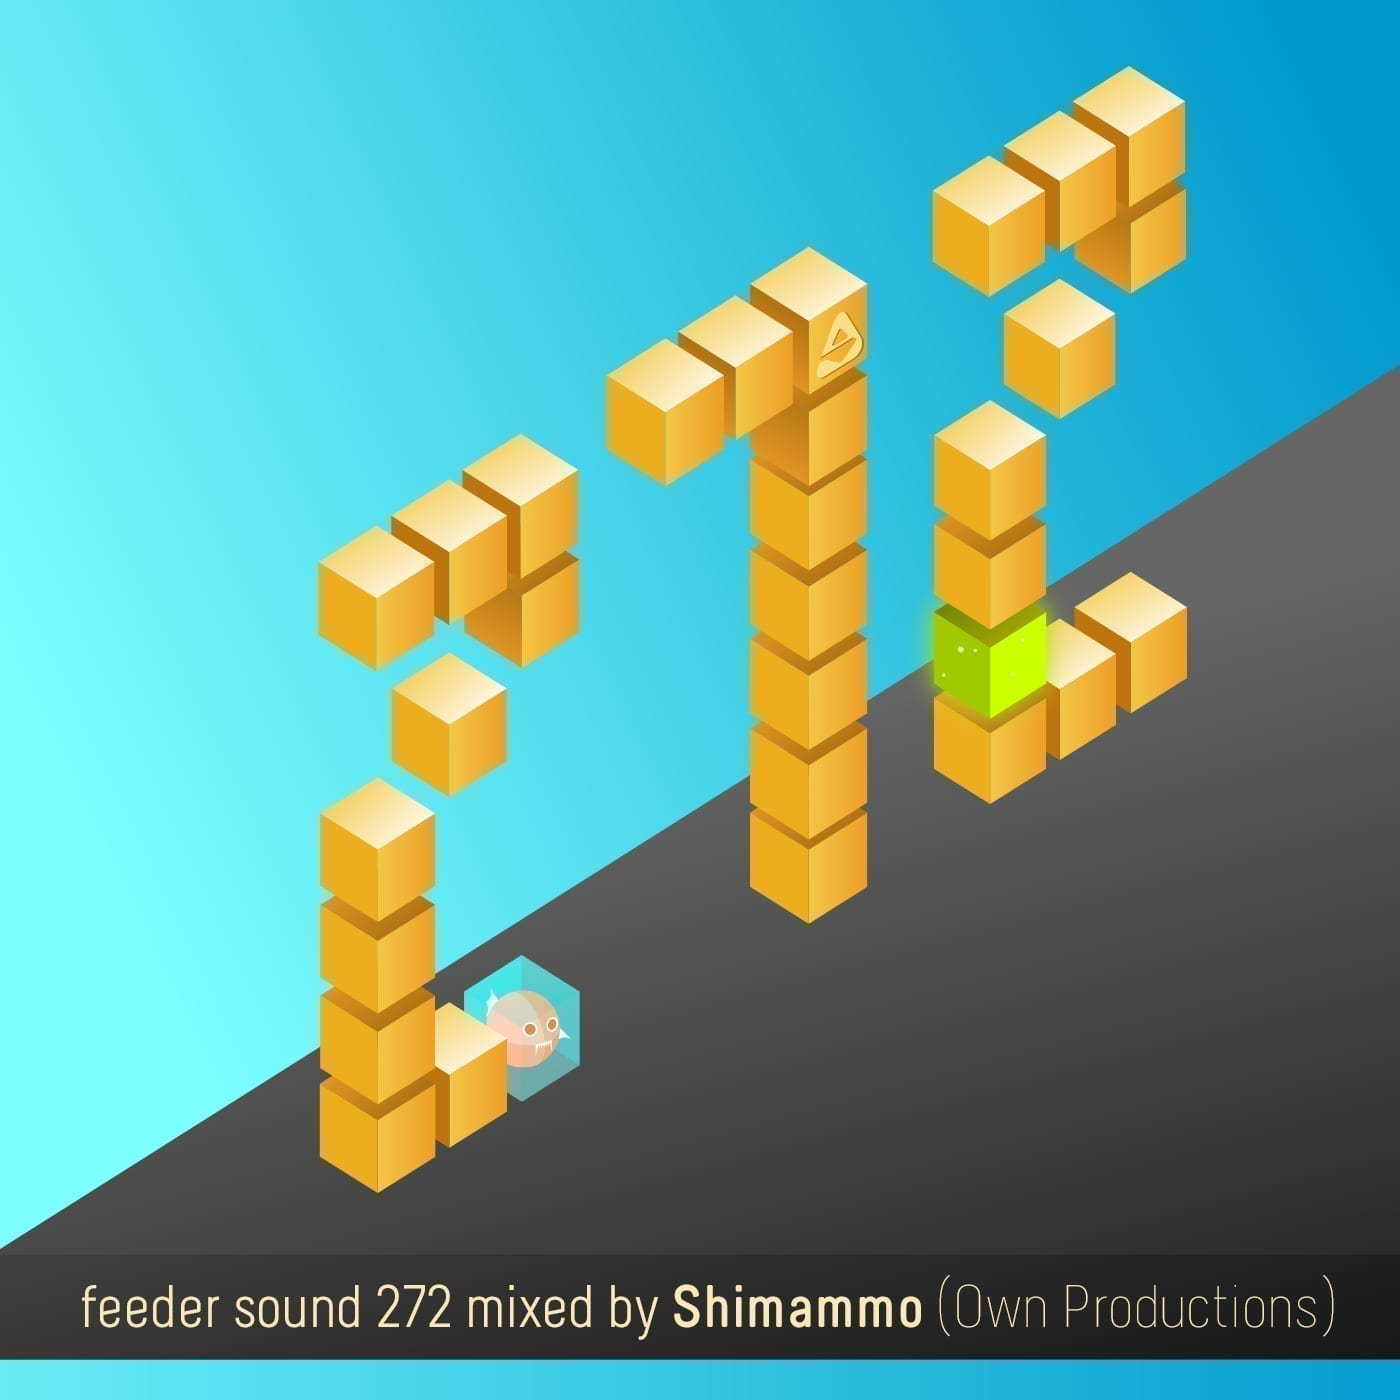 feeder sound 272 mixed by Shimammo (Own Productions) 01